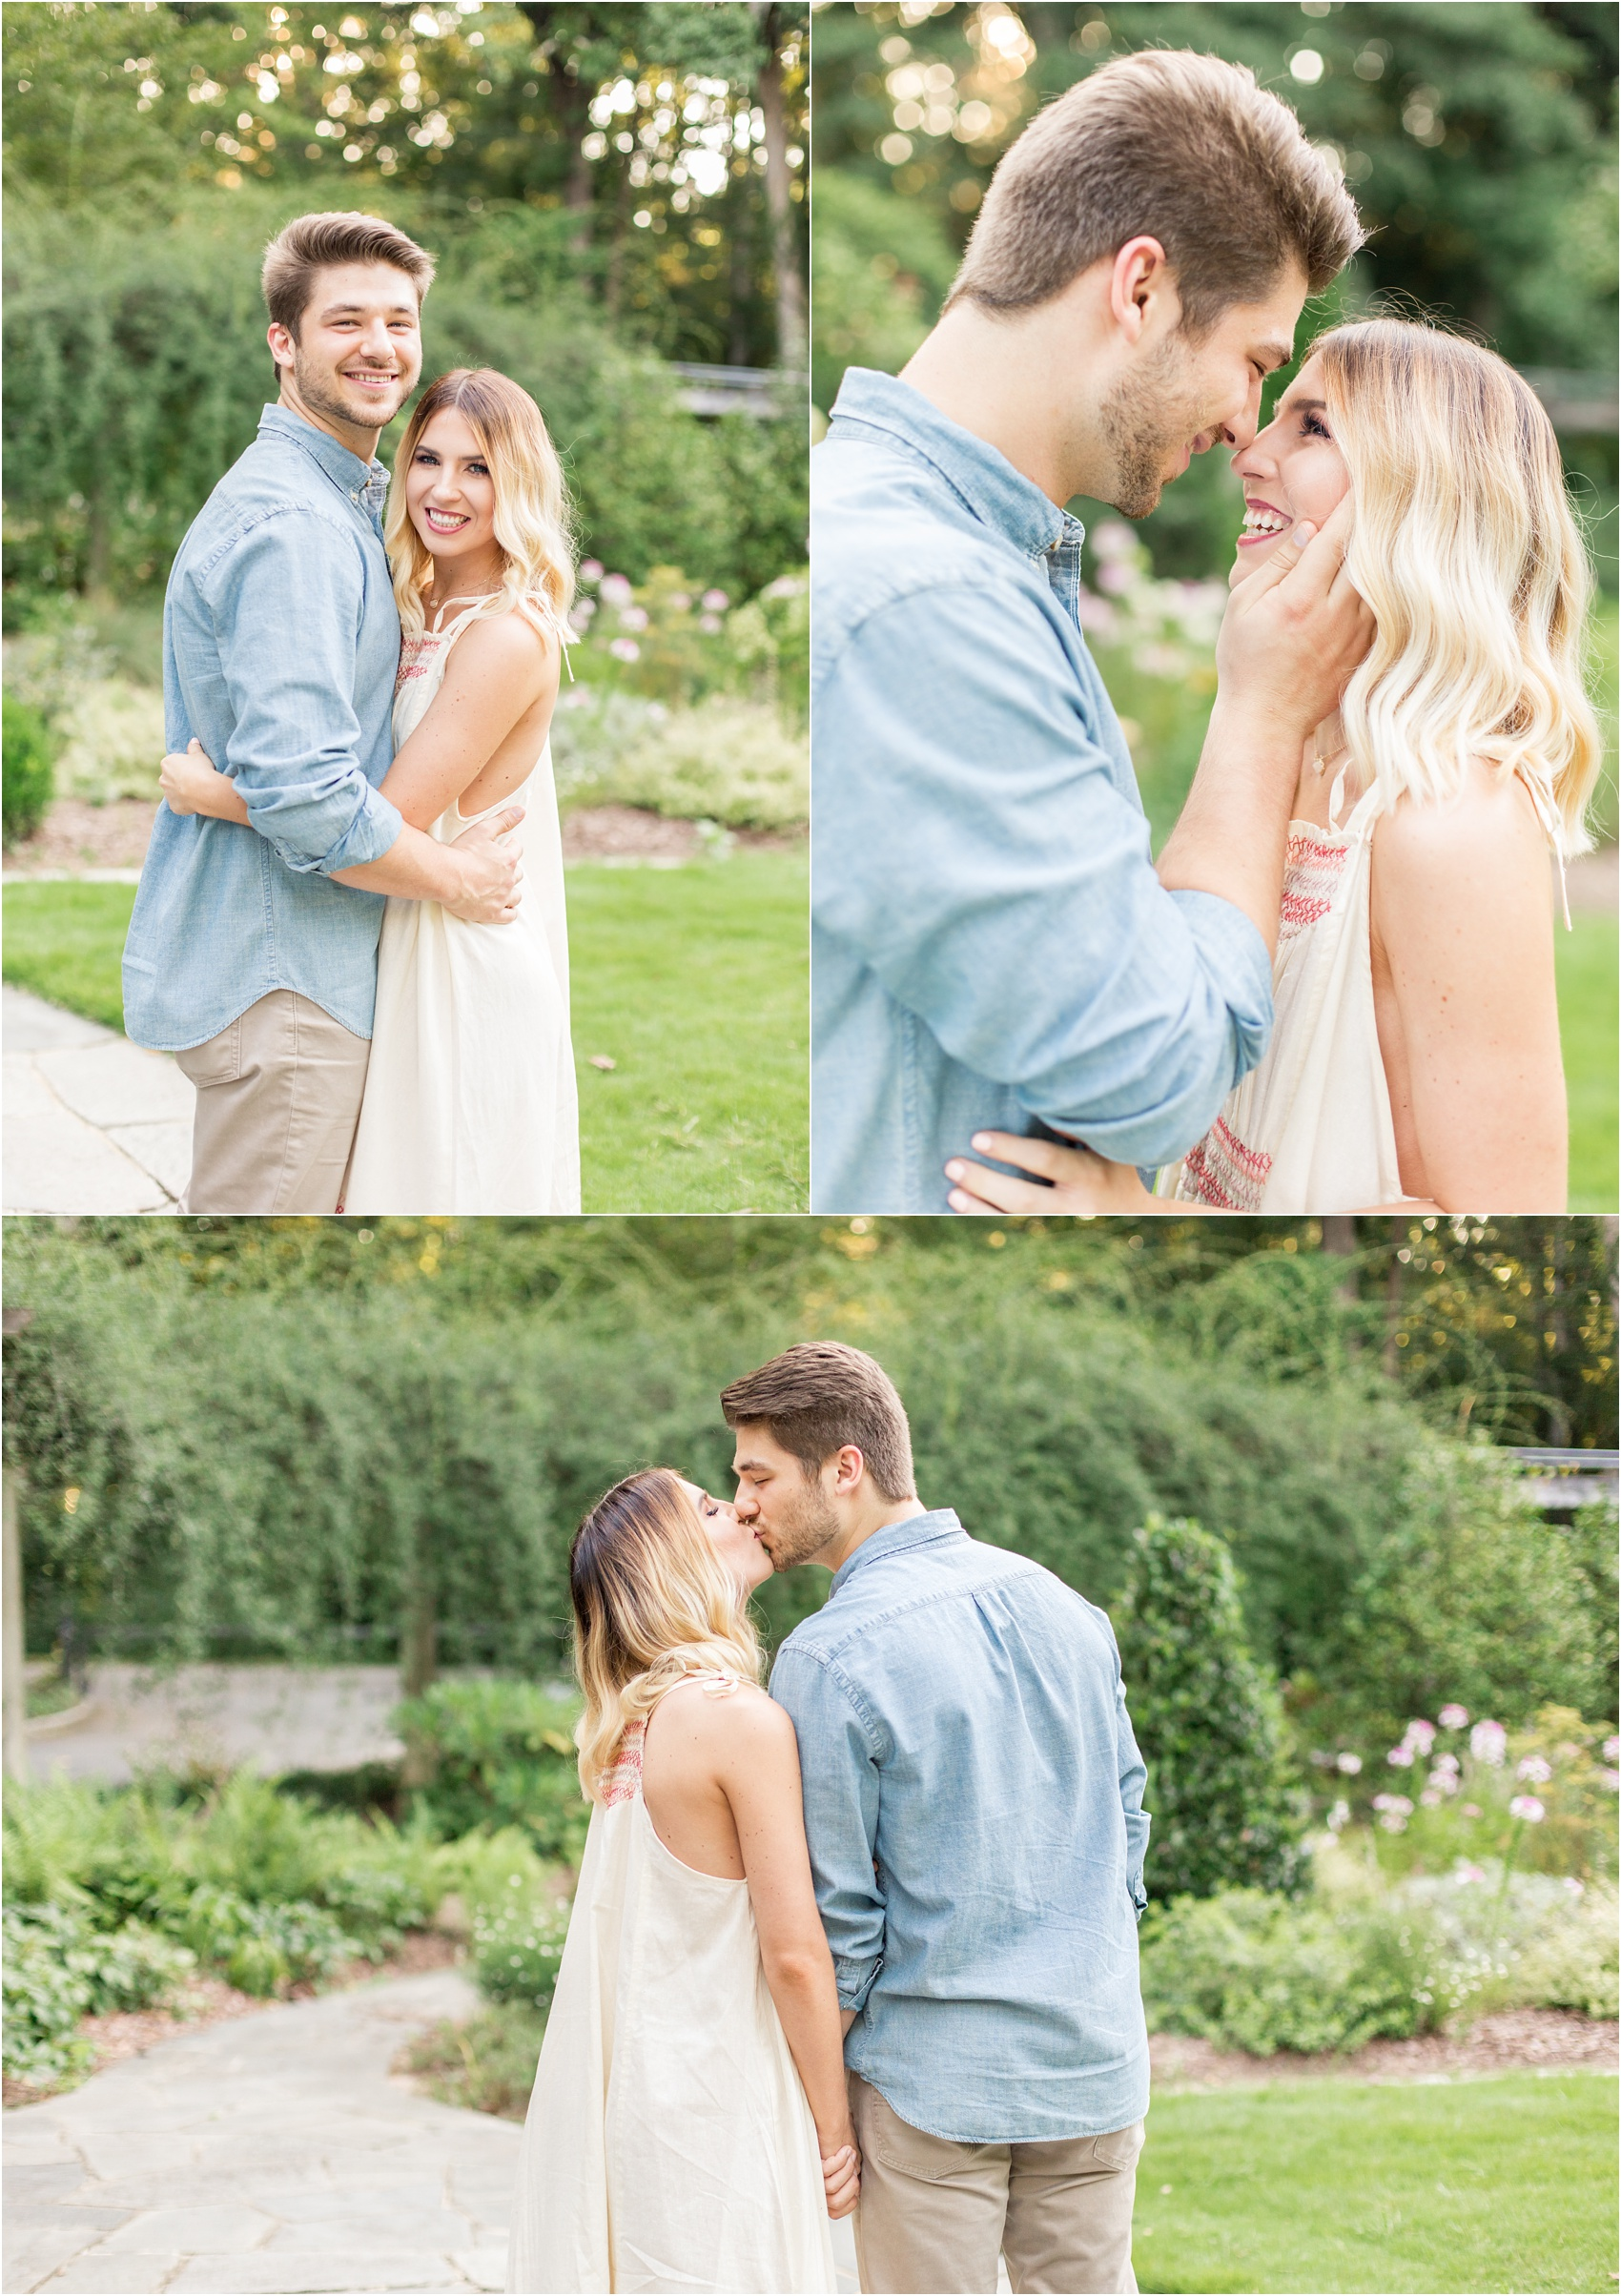 Savannah Eve Photography- Lauren & Chase @ CWG-8.jpg